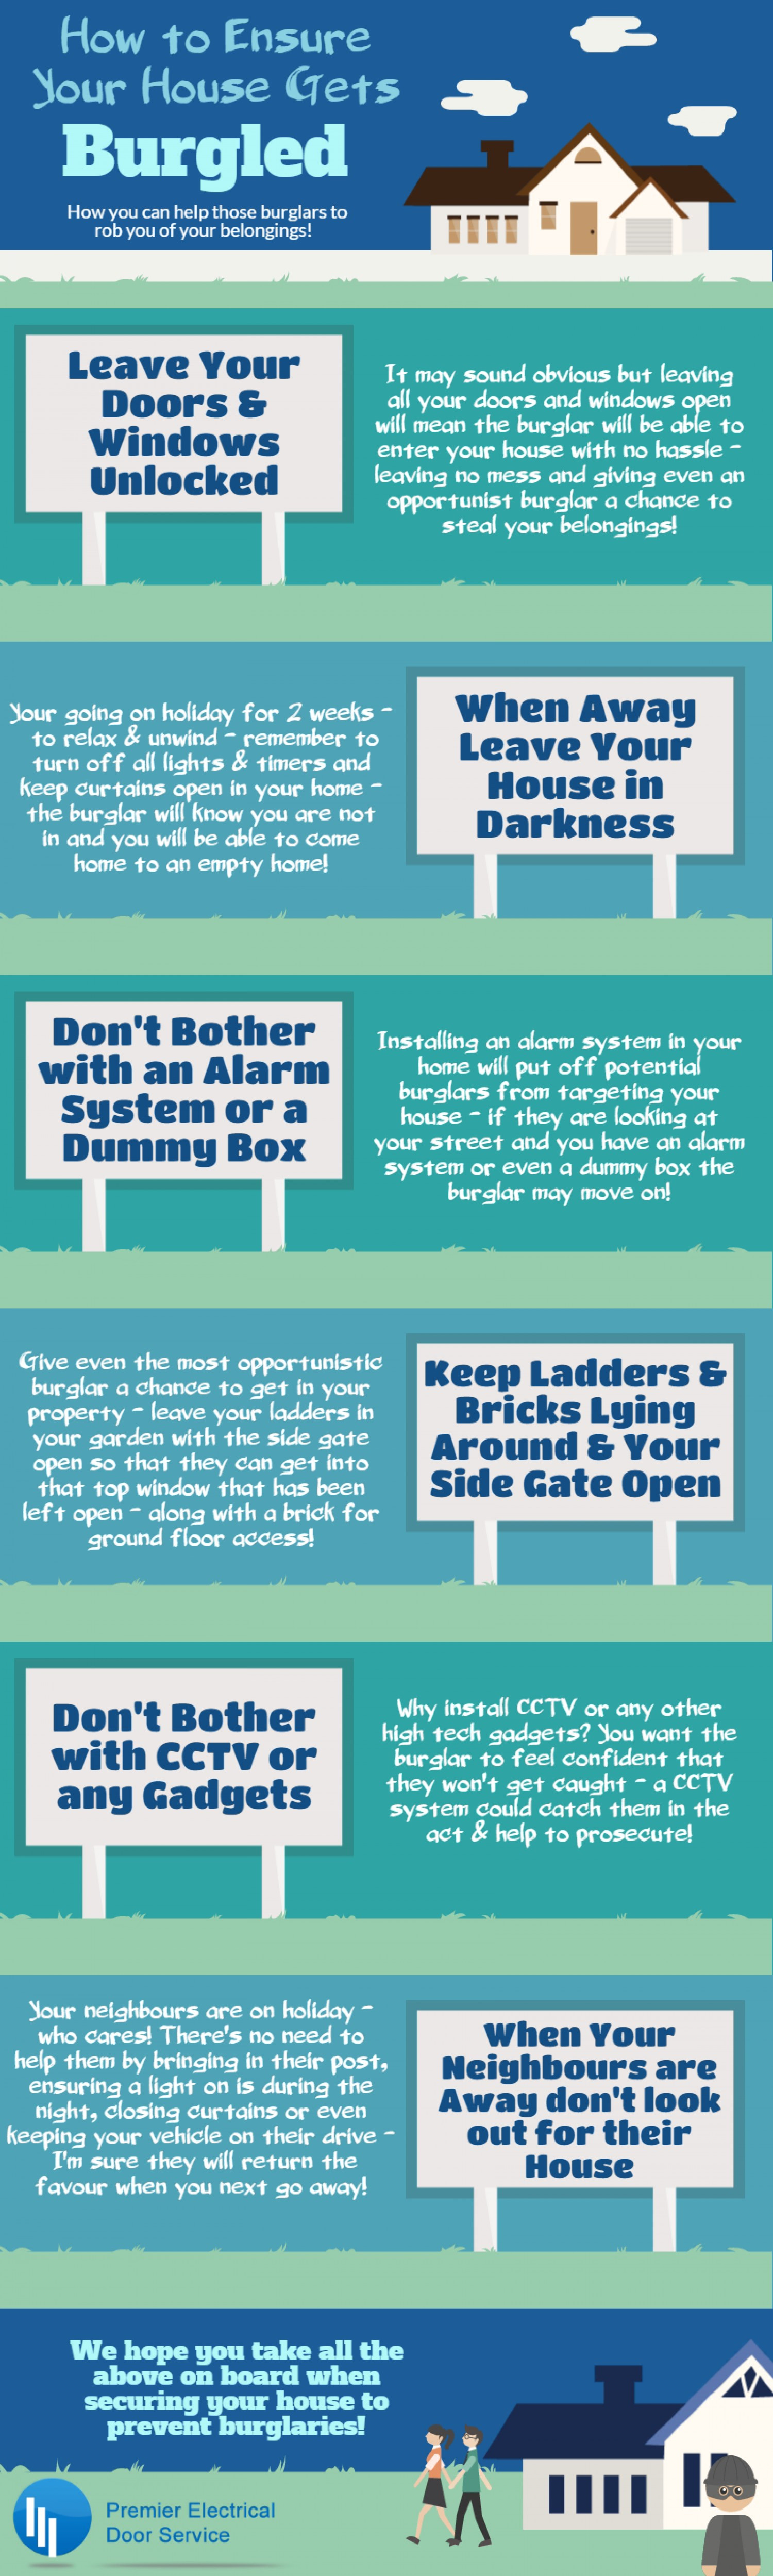 How to ensure your house gets burgled! Infographic